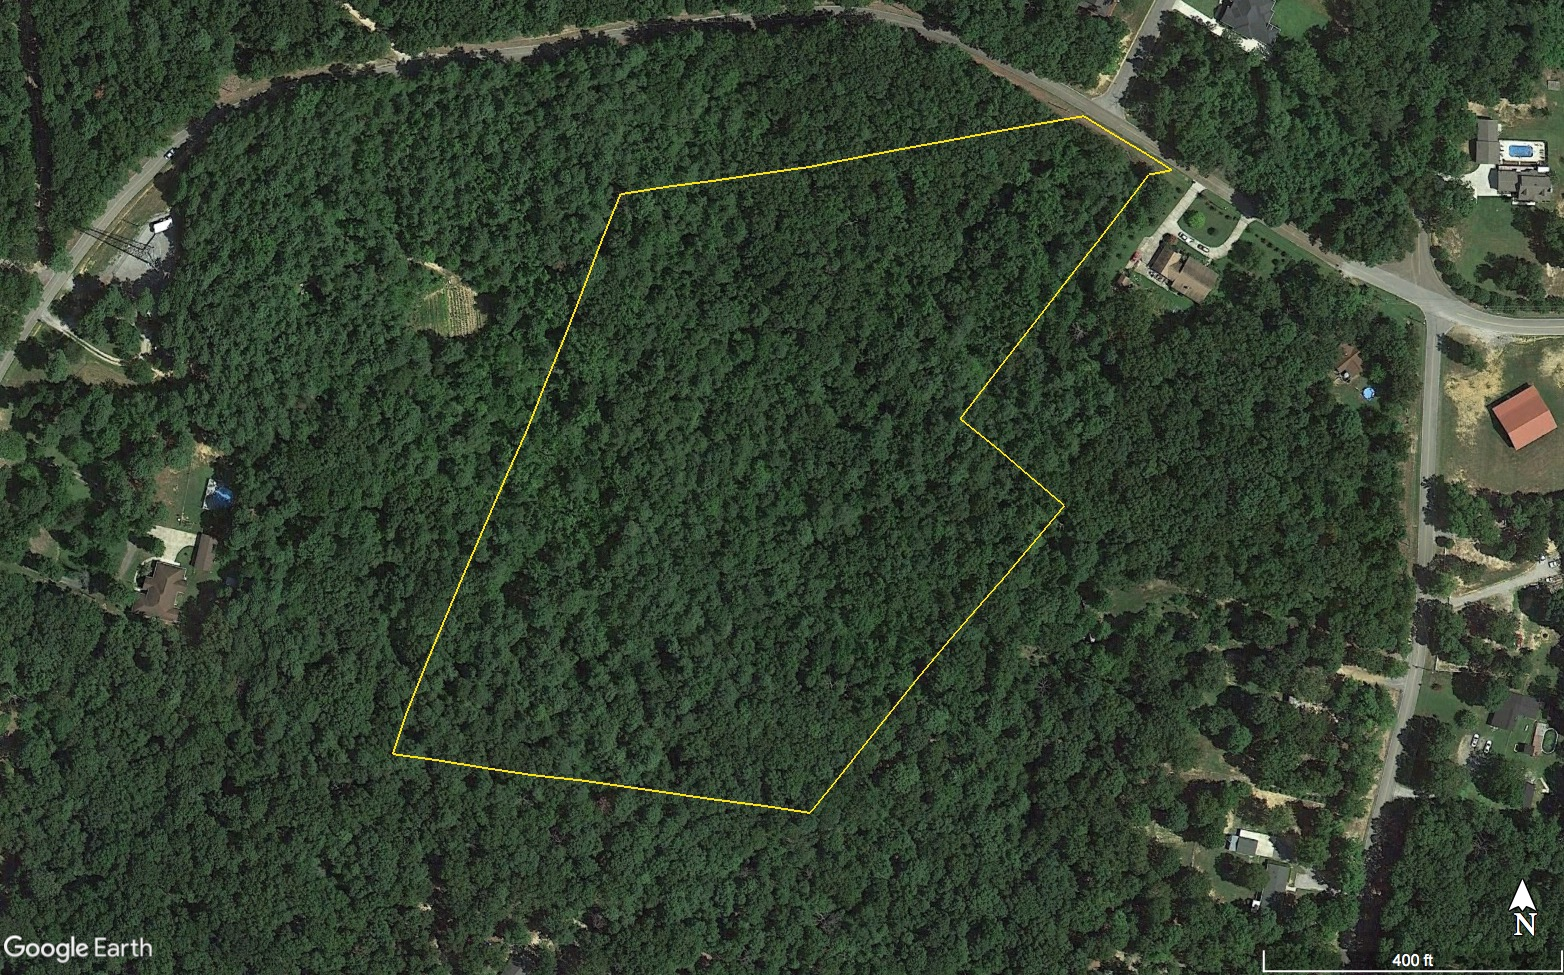 12 Acres Keel Mt Perimeter Overlay